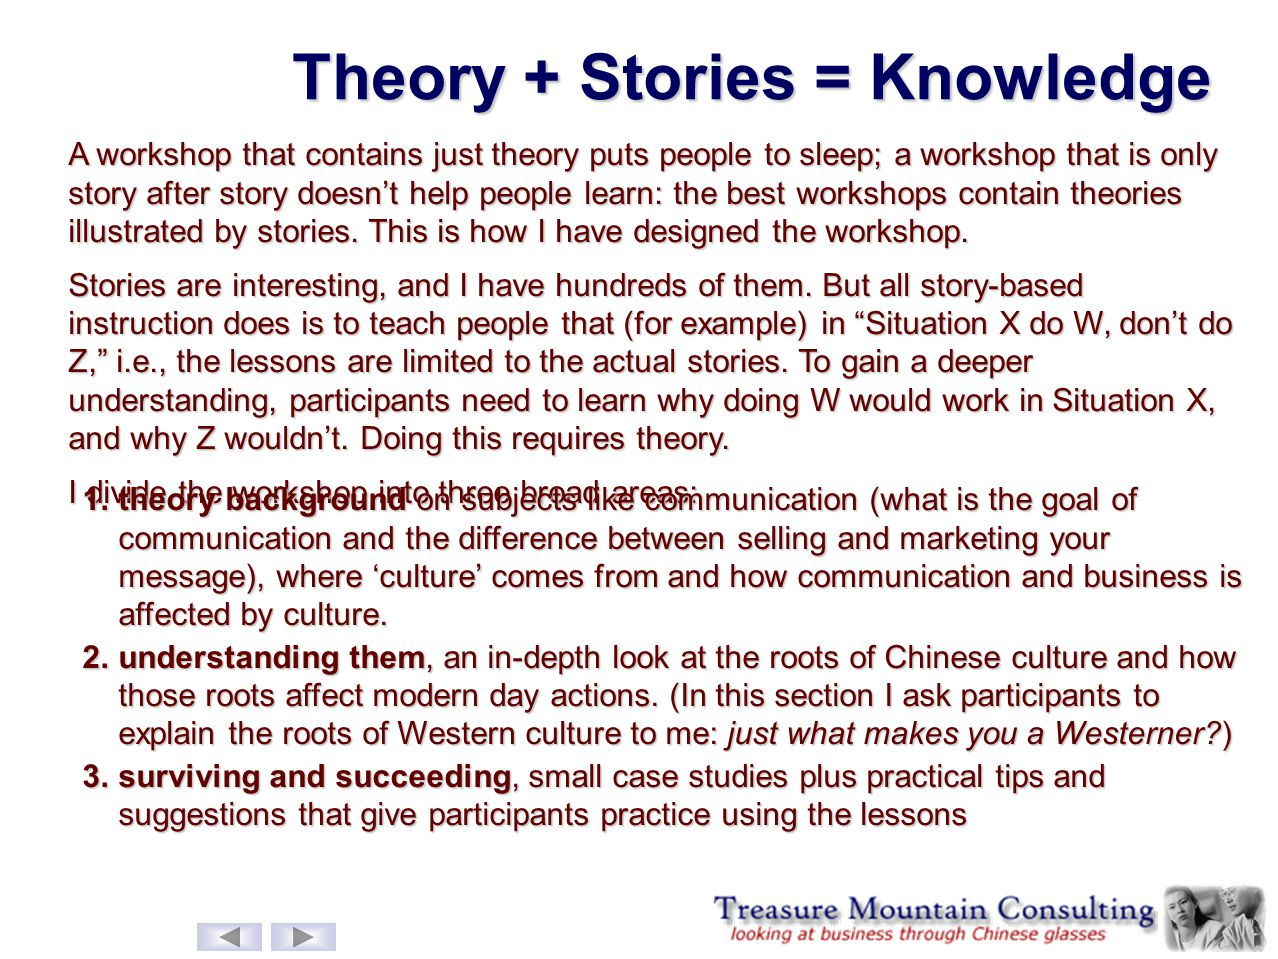 Theory + Stories = Knowledge